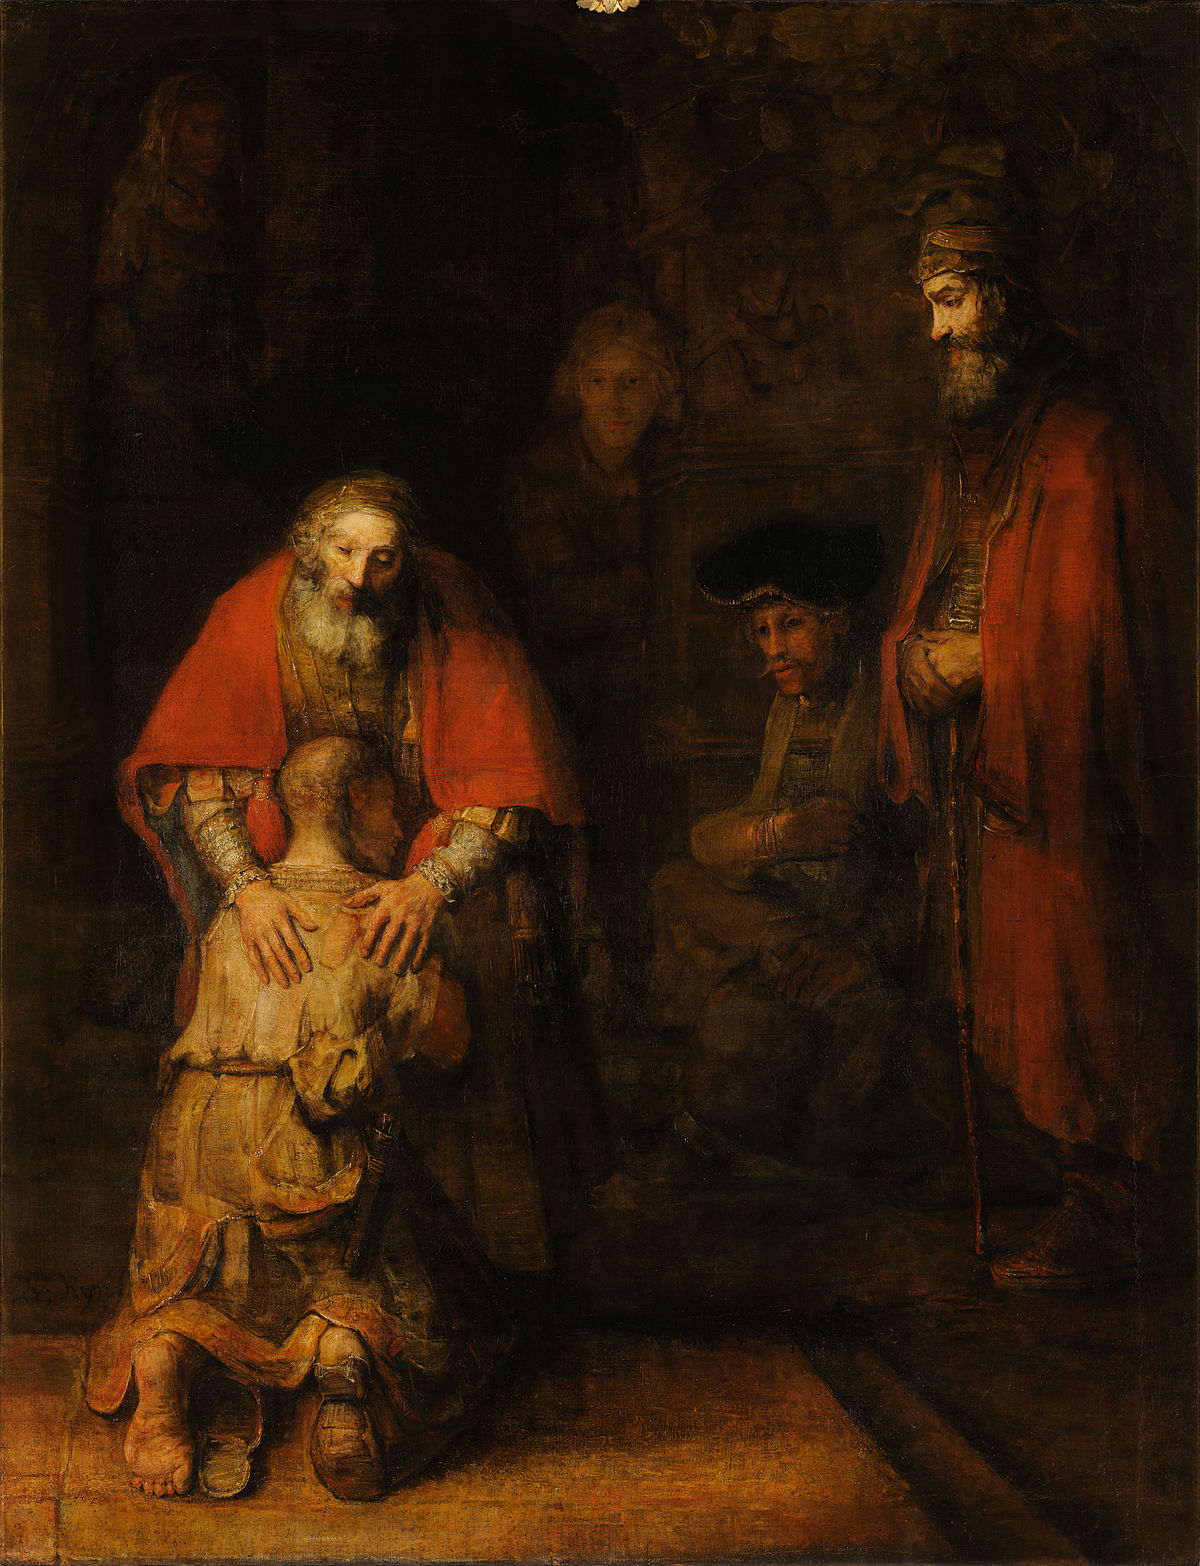 """The Return of the Prodigal Son"" - Rembrandt"